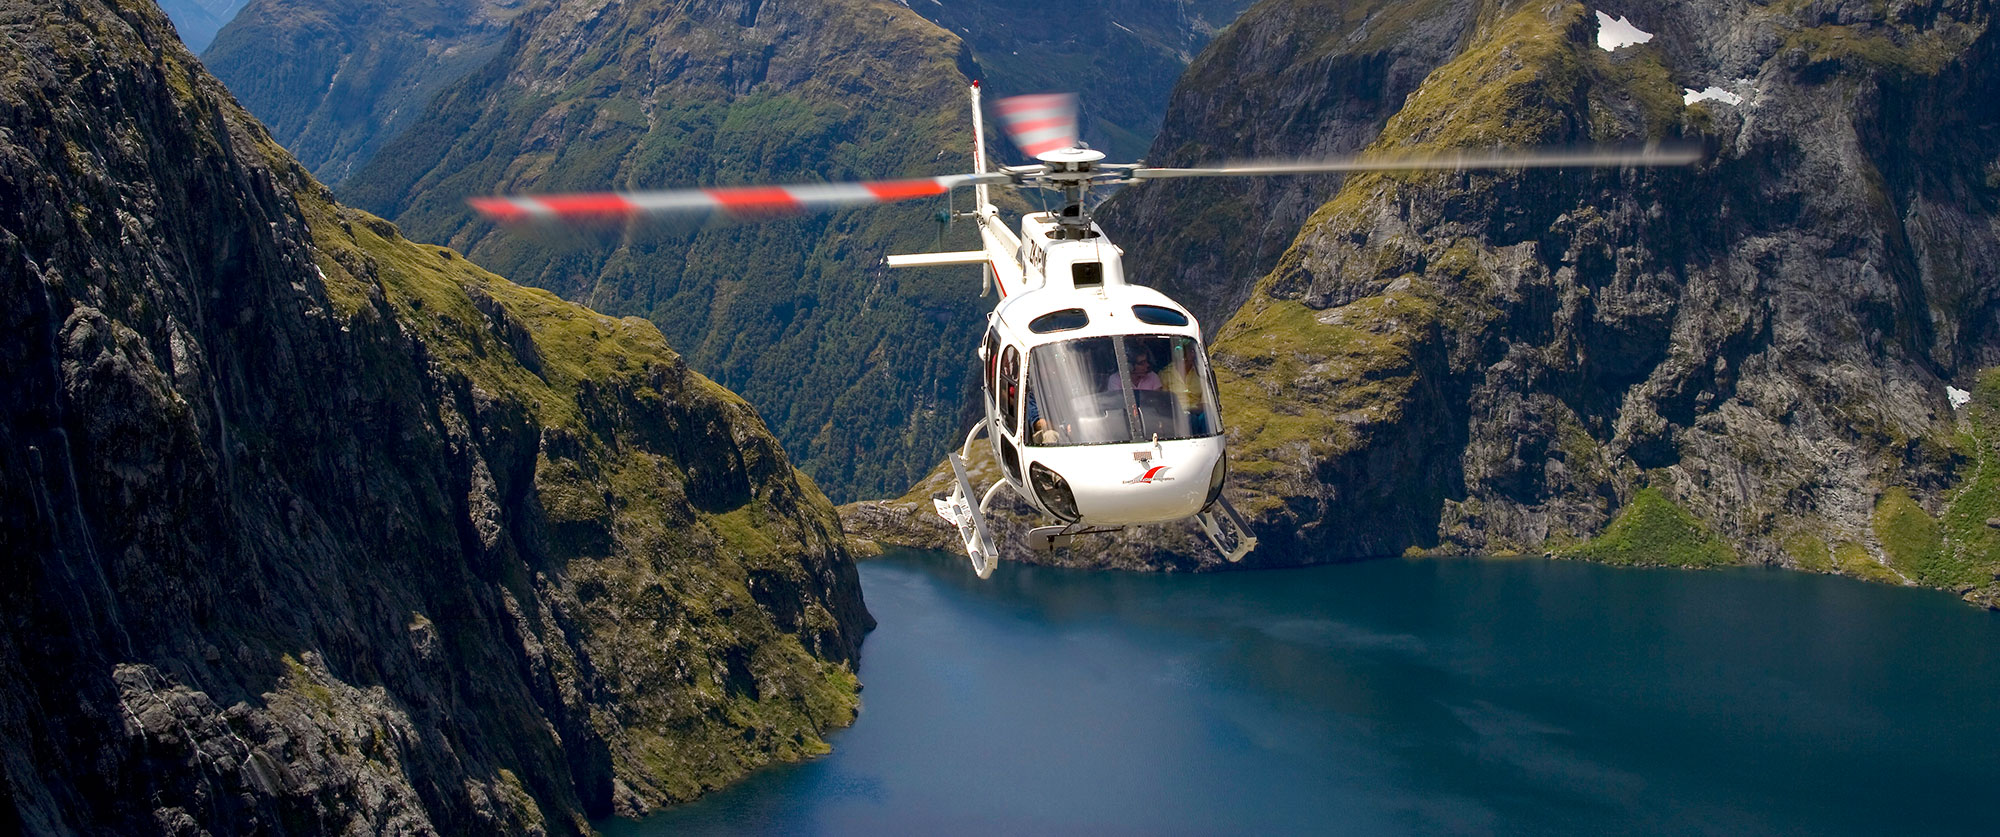 Indulgent Escape: New Zealand Luxury Vacation - Helicopter Over Milford Sound